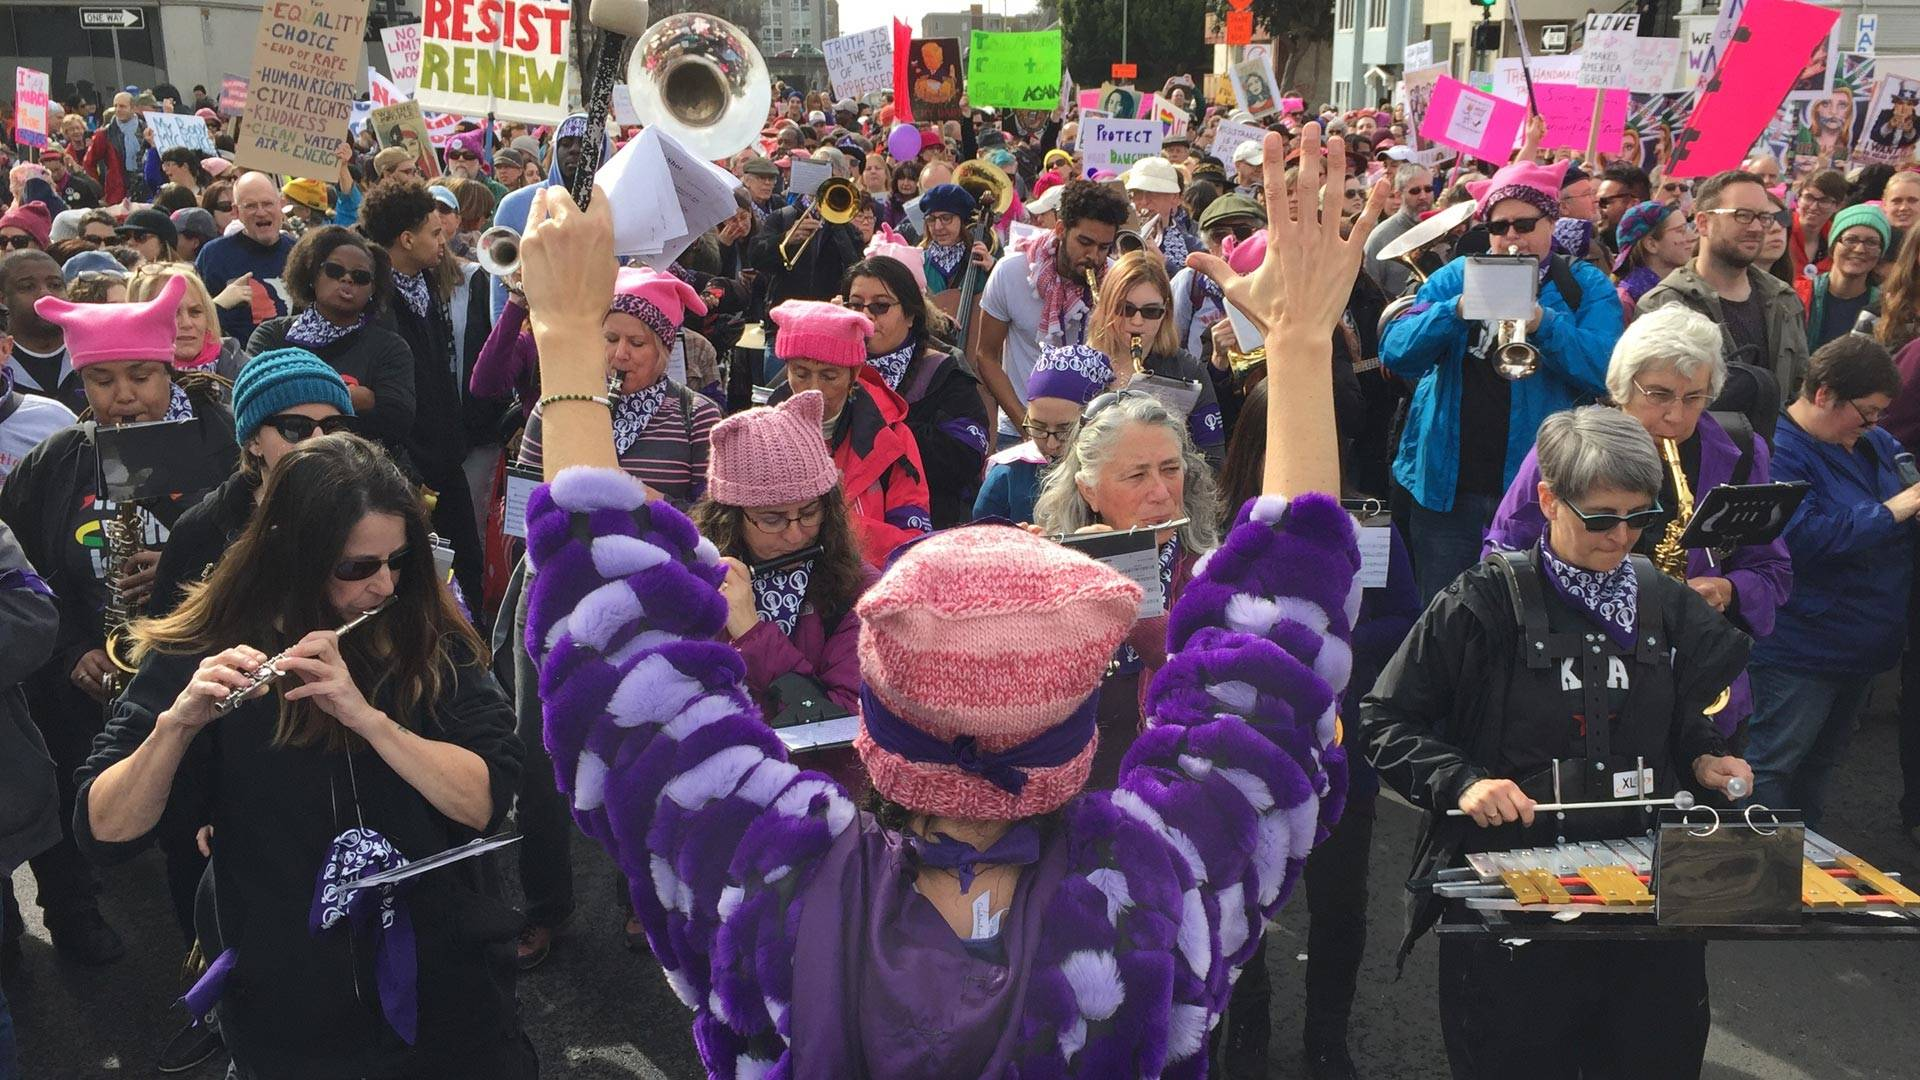 The Nasty Woman Band keeps spirits up with music at the Women's March in Oakland, Jan. 21, 2017.